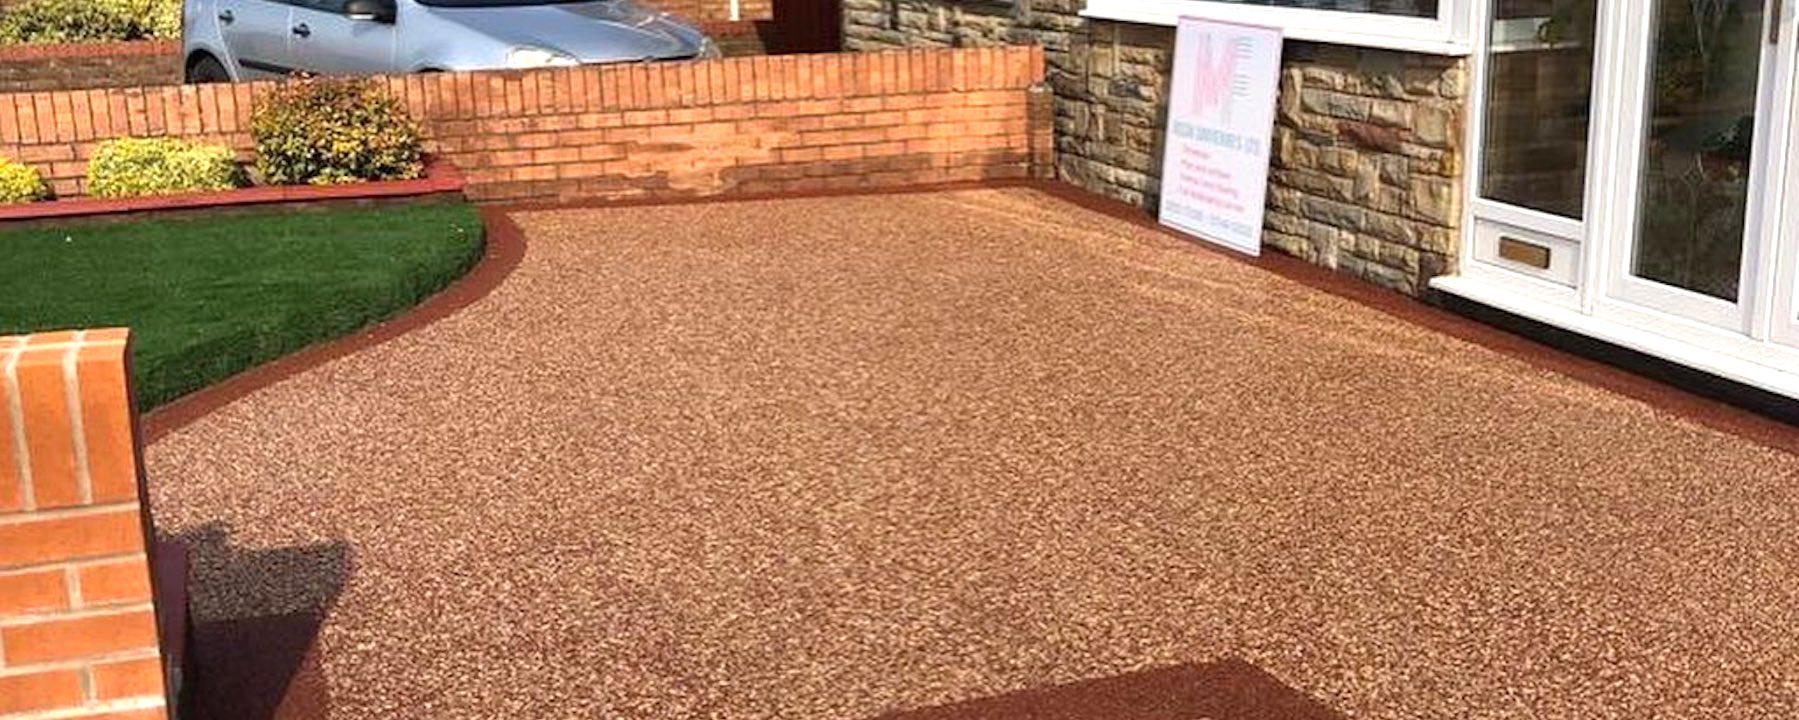 MF Resin Driveways - Resin Bound Driveways